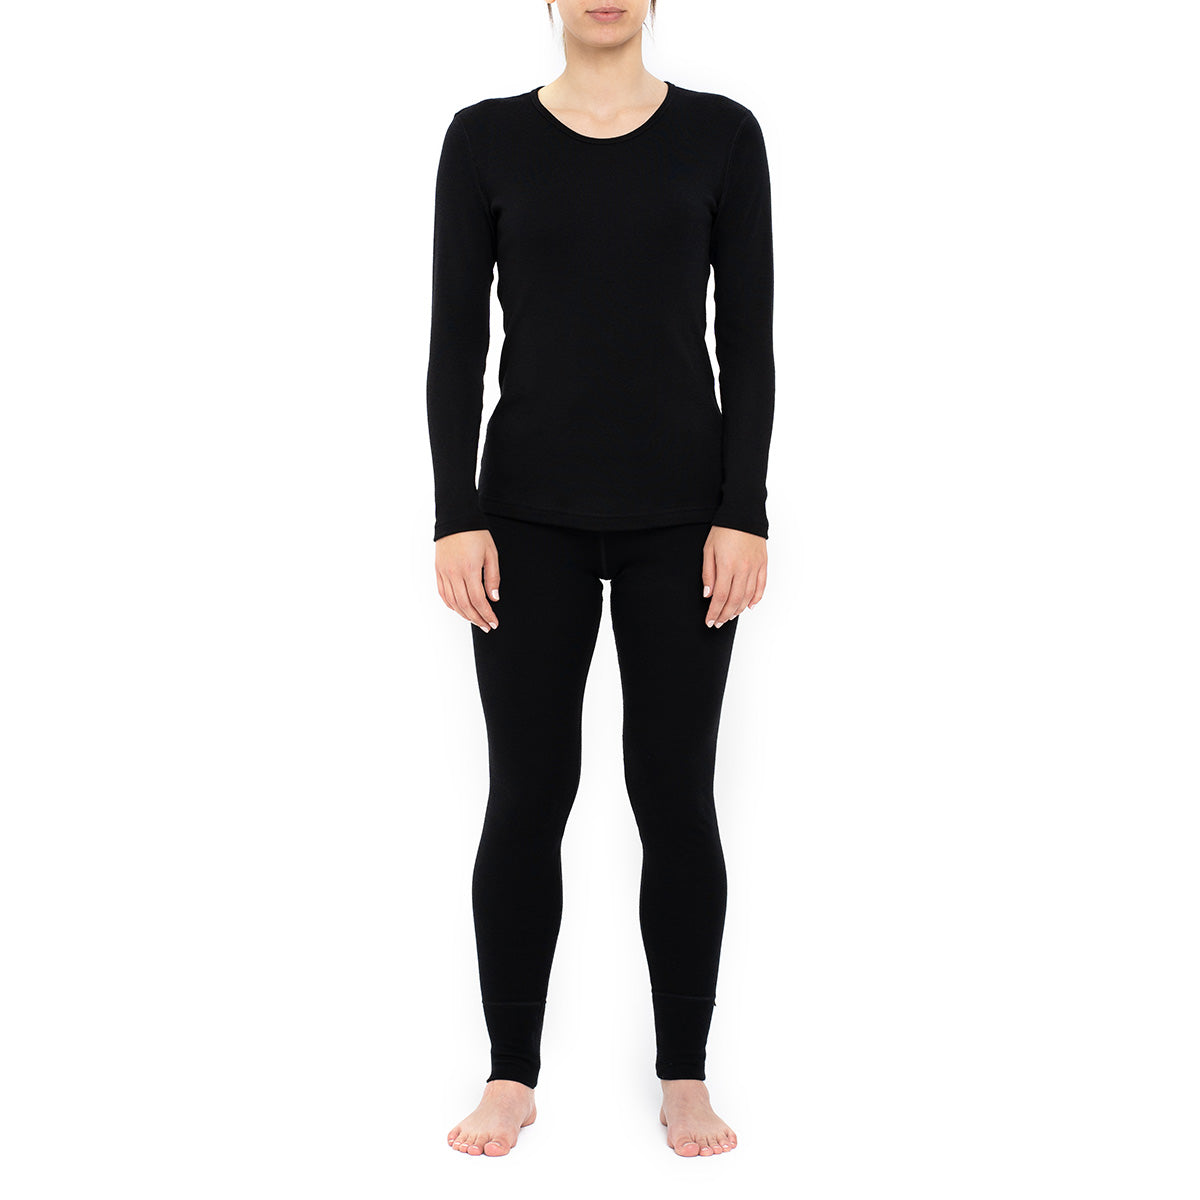 Women's Long Sleeve Set 250gsm Merino Wool Black